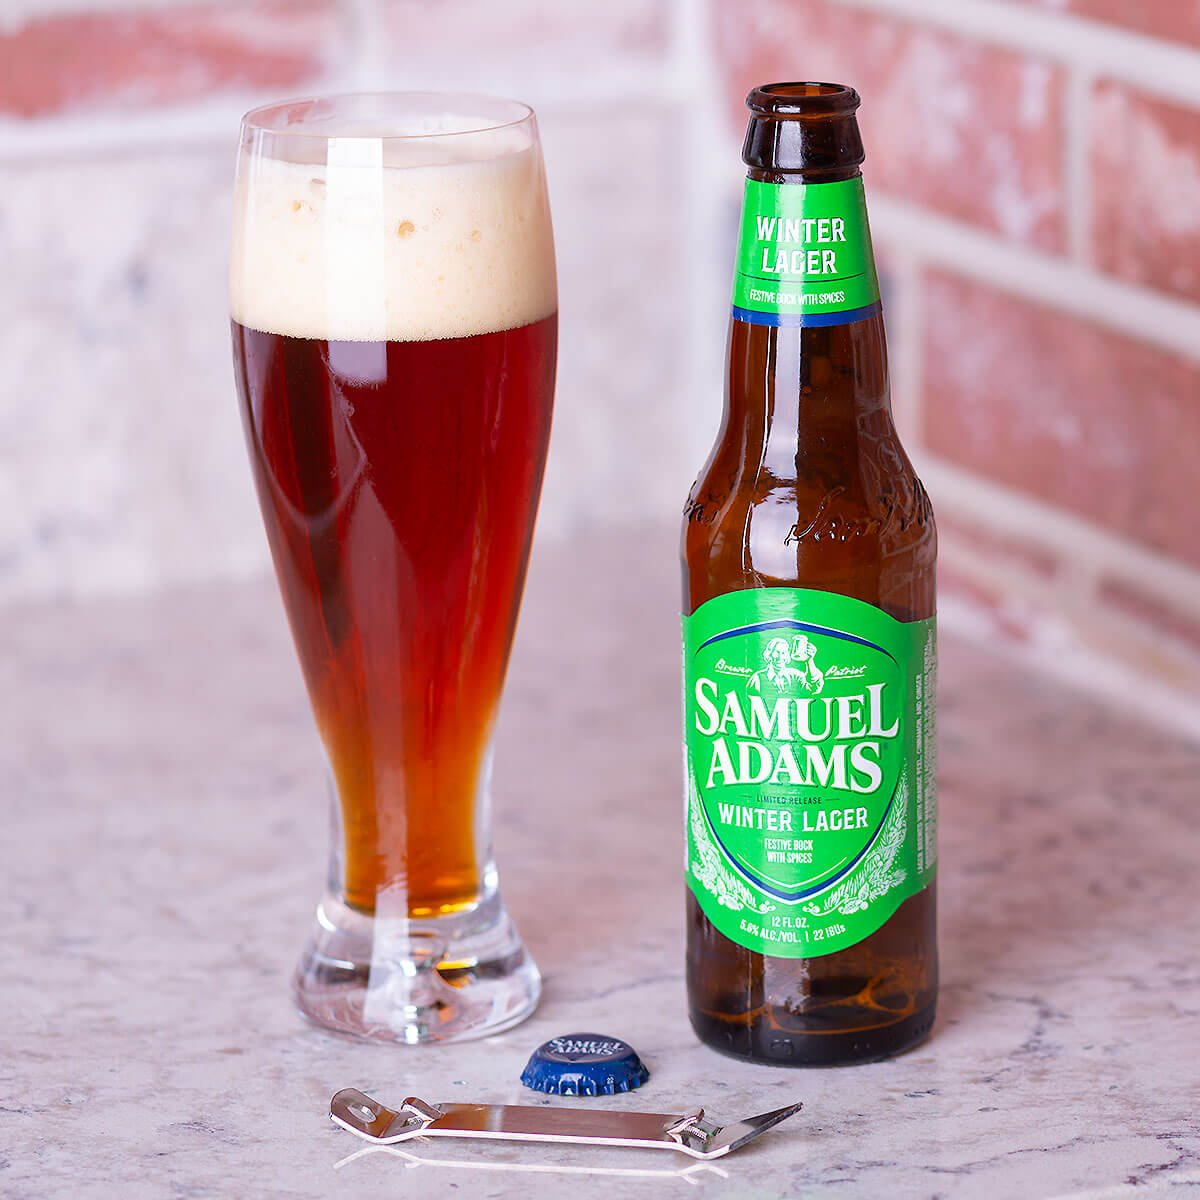 Samuel Adams Winter Lager is a German-style Bock by the Boston Beer Company that mixes noble hops, baked bread, orange peel, spices.